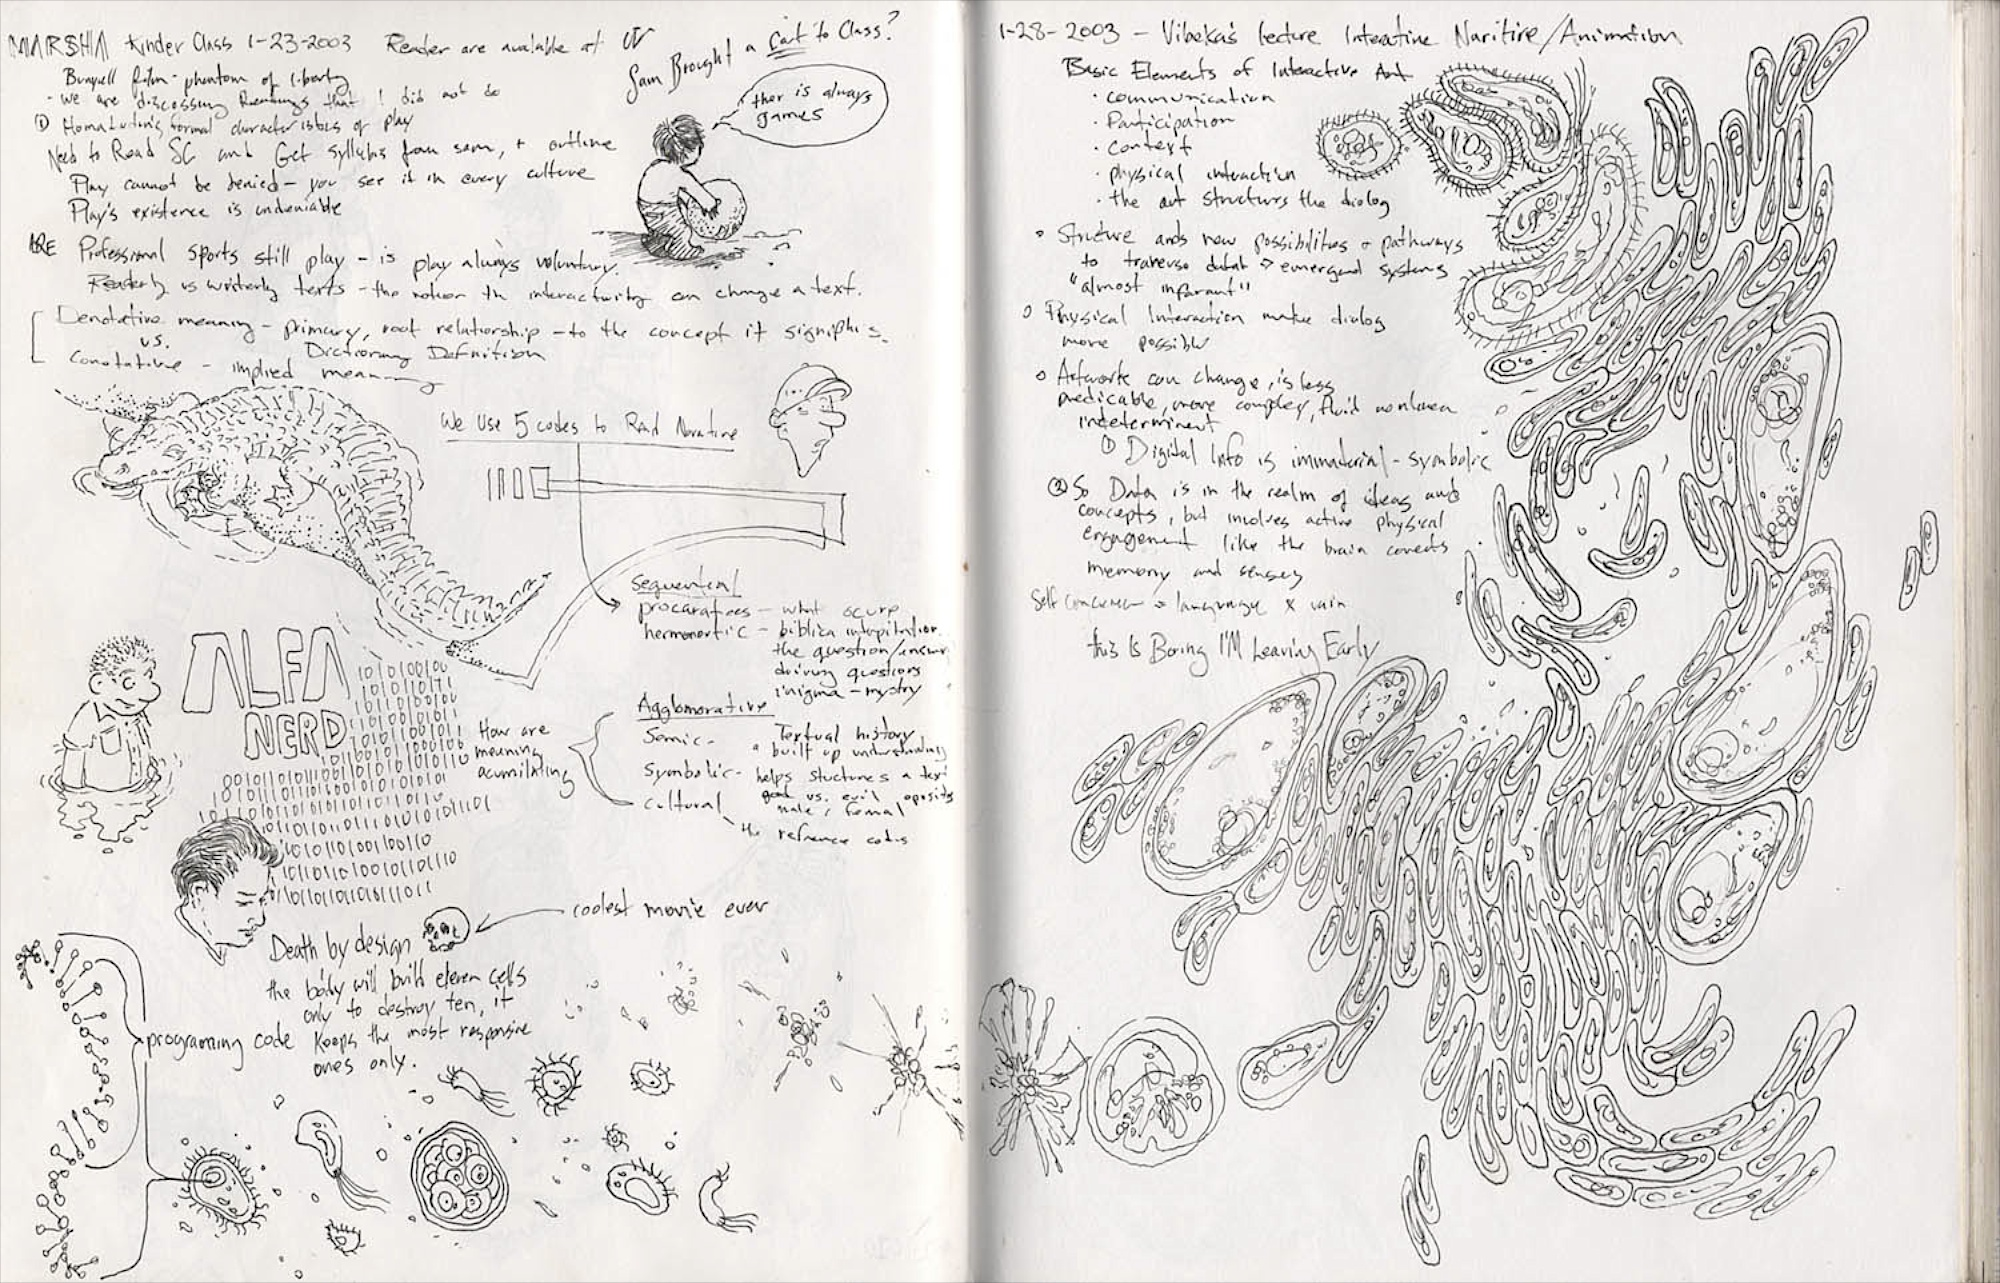 microb notes